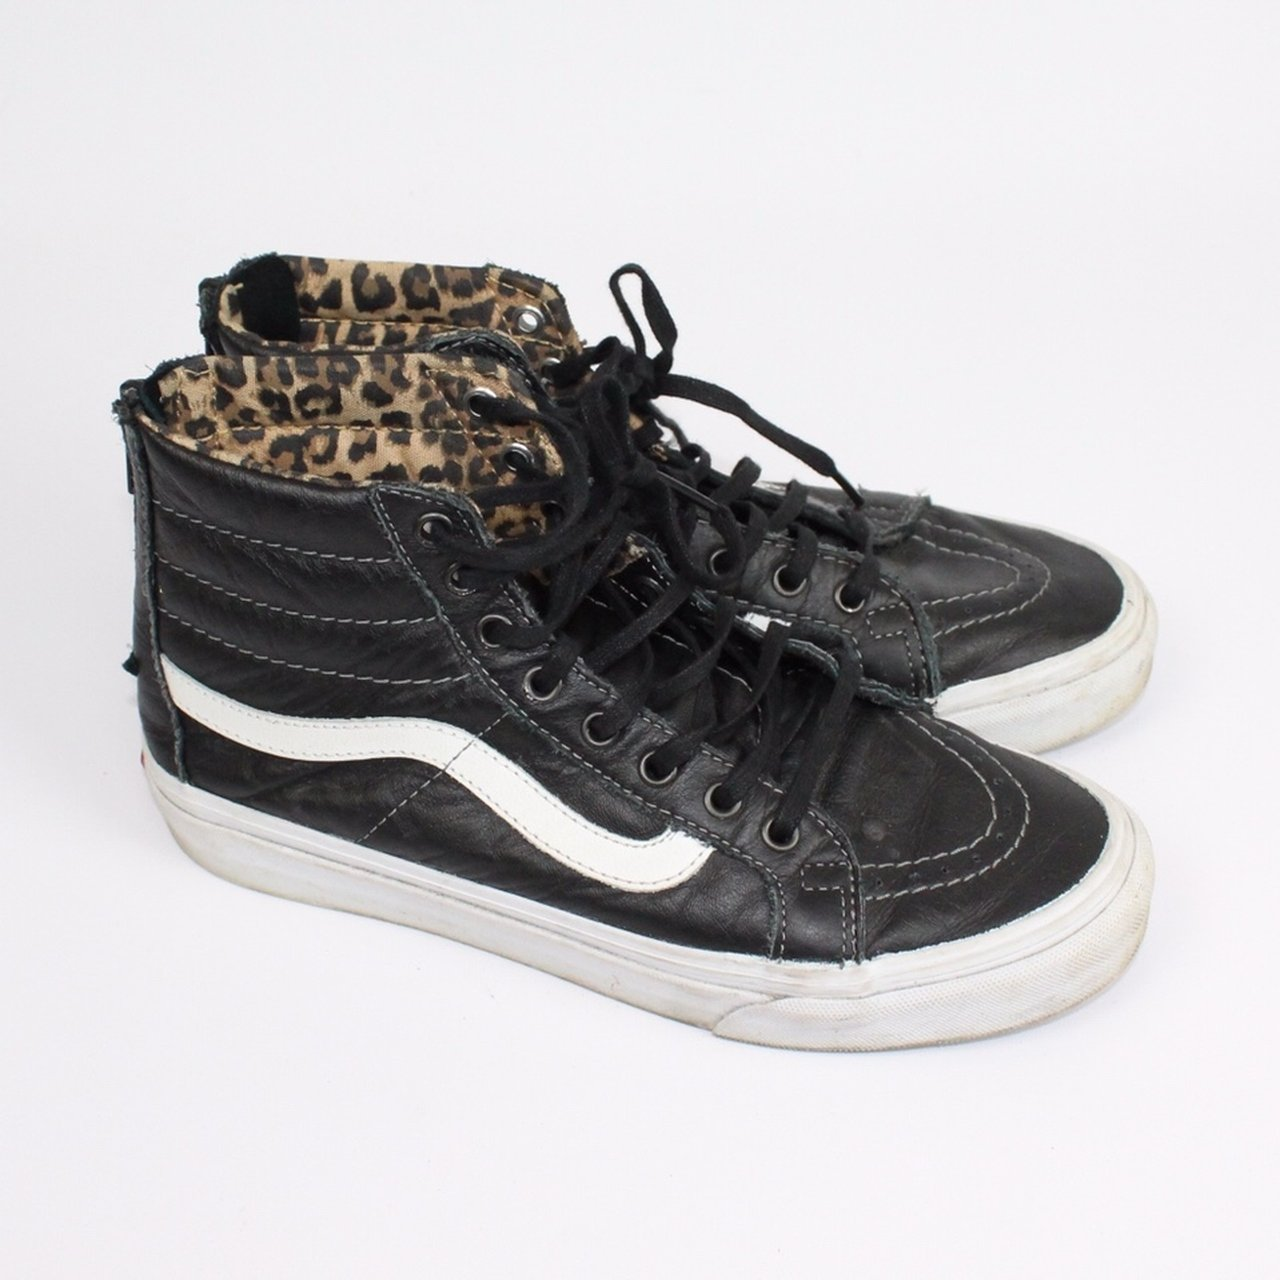 87d8590d32 Leather black and white classic high top vans Zip laces